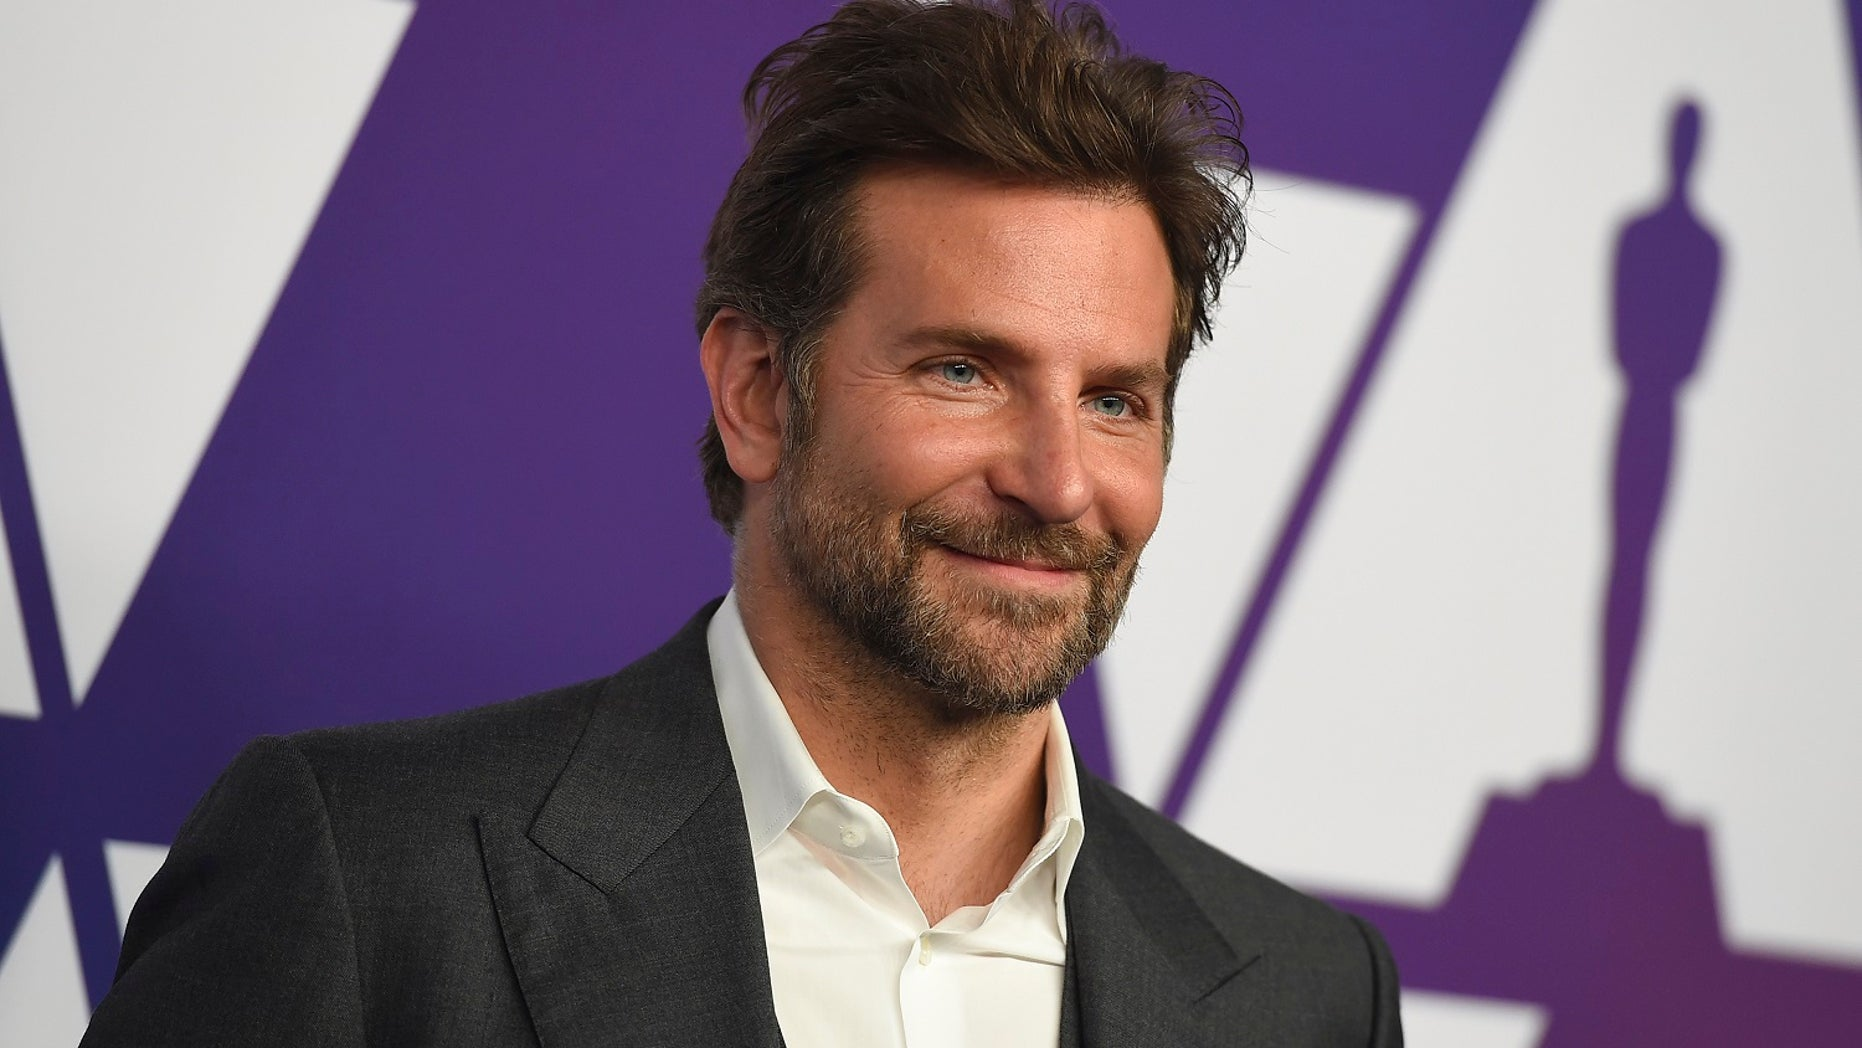 Bradley Cooper arrives at the 91st Academy Awards Nominees Luncheon on Feb. 4, 2019, at The Beverly Hilton Hotel in Beverly Hills, Calif. (AP)